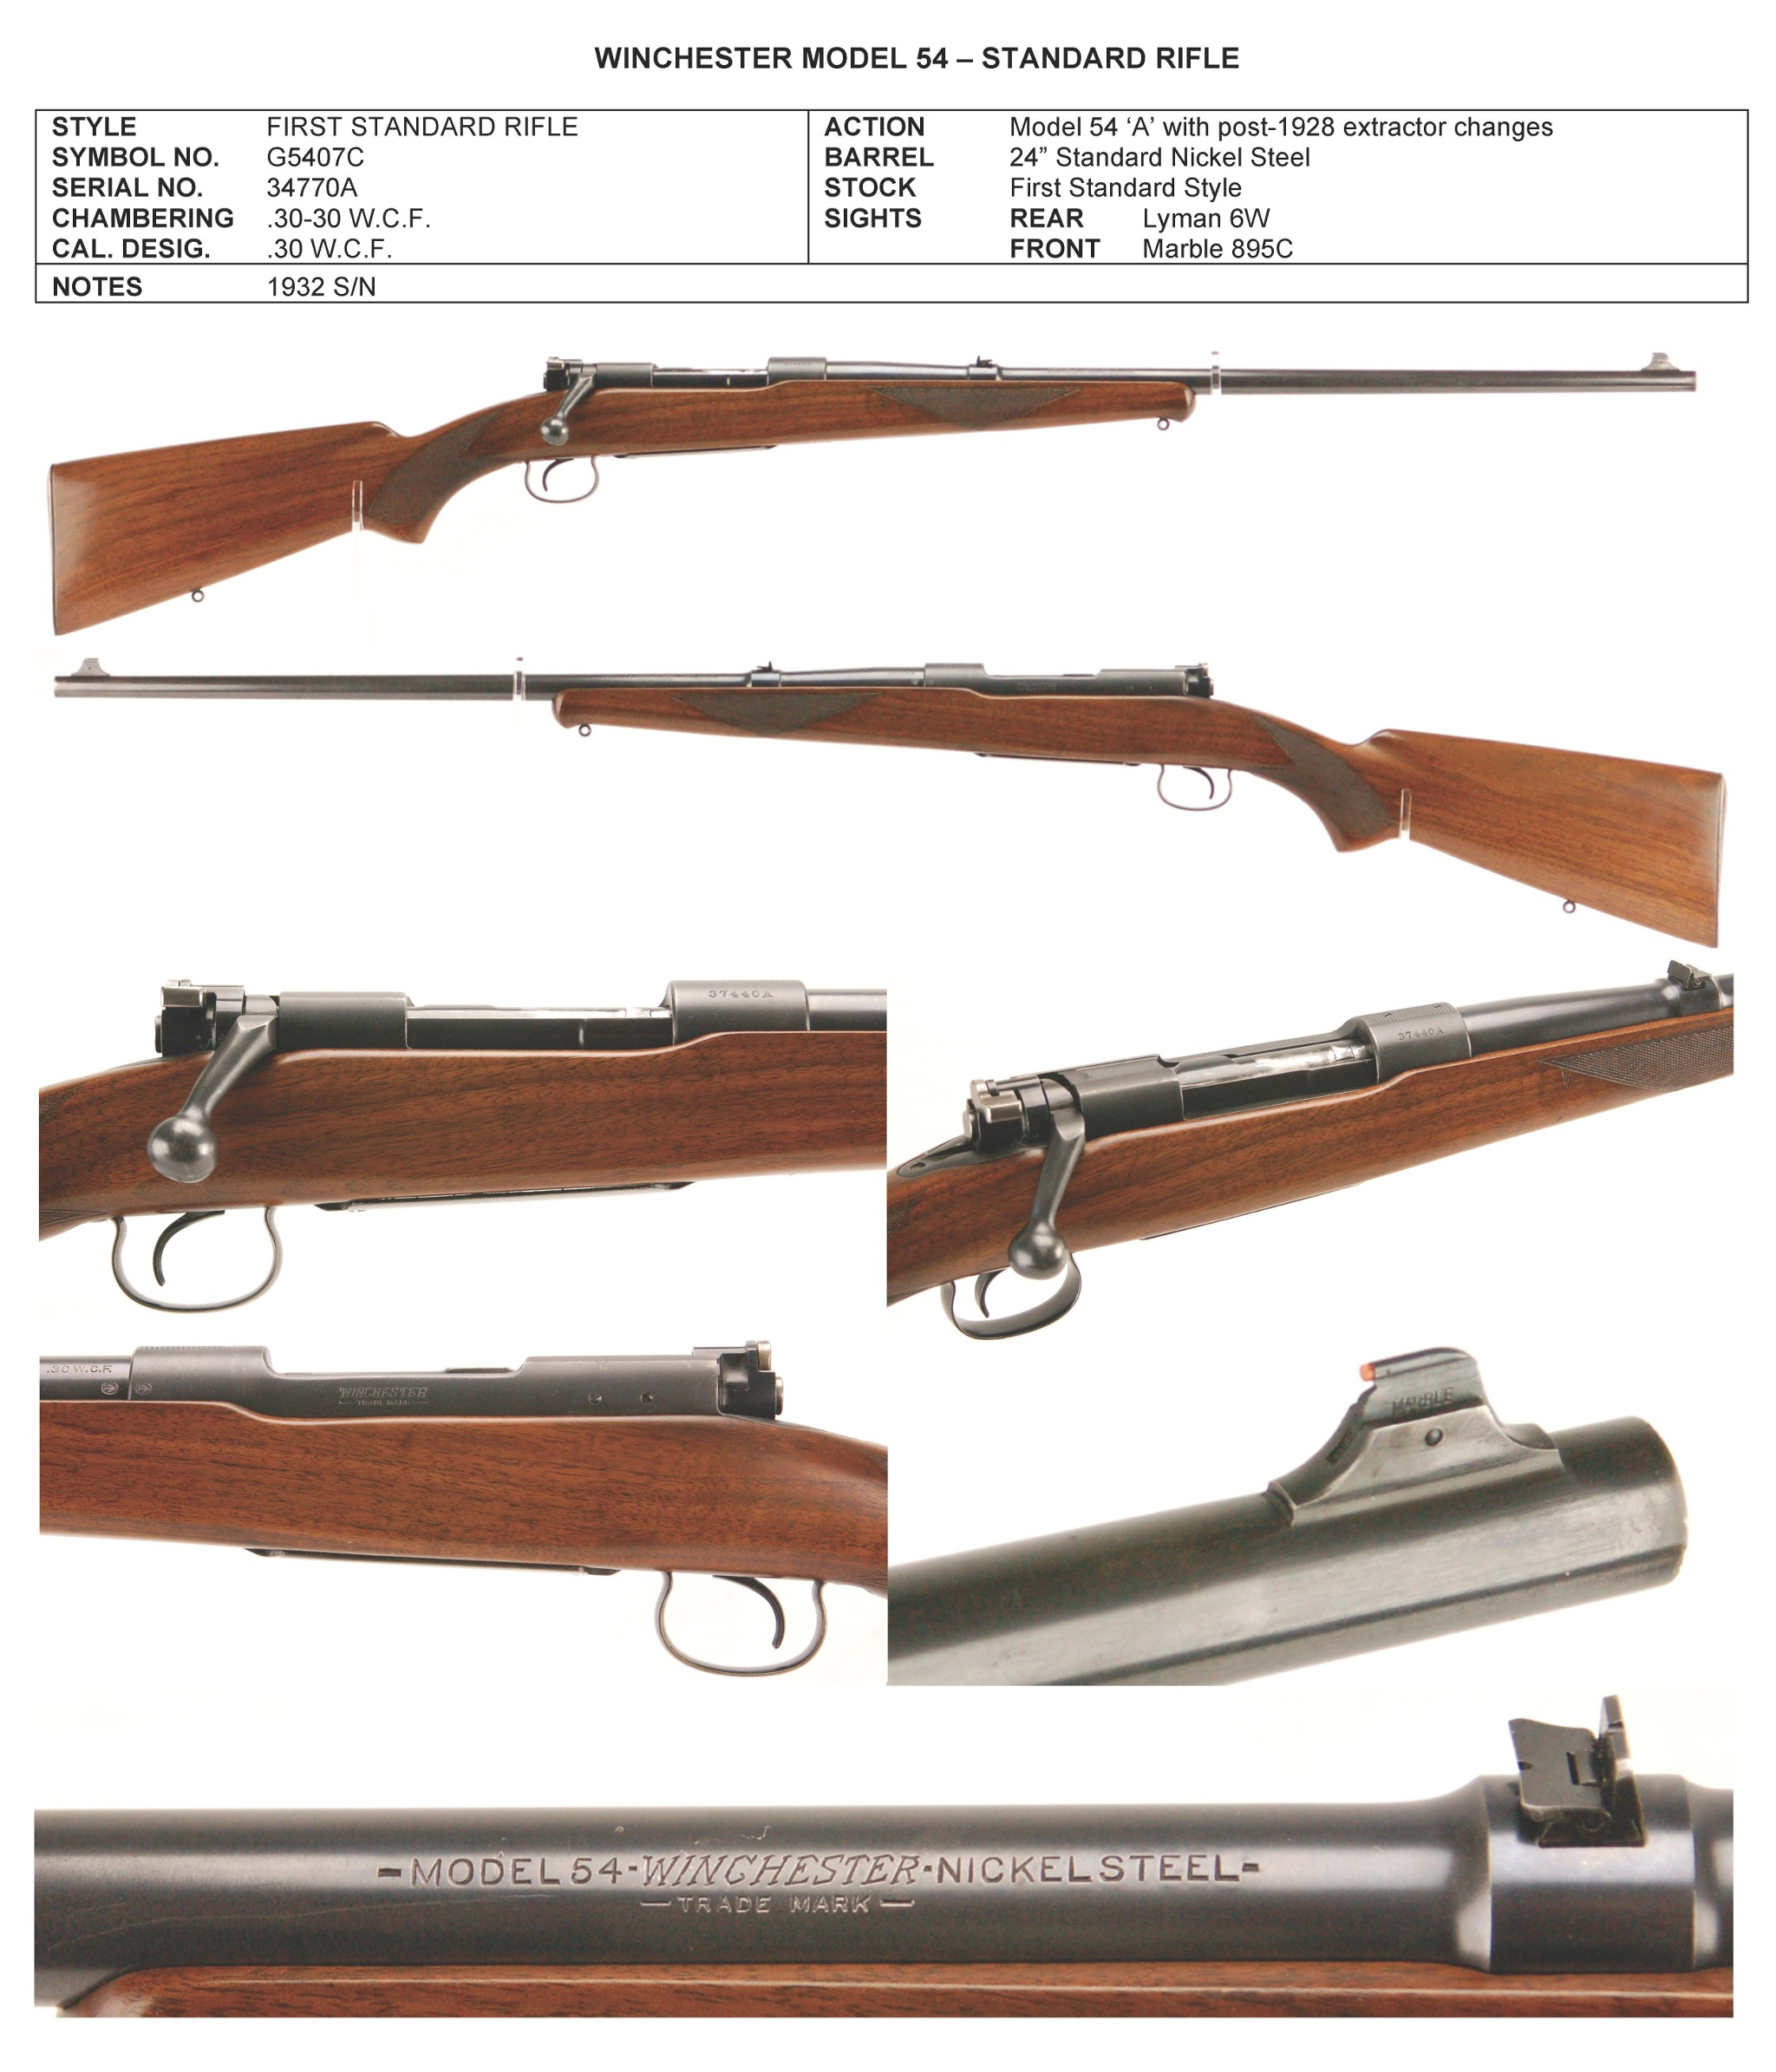 Winchester M54 sporting rifle